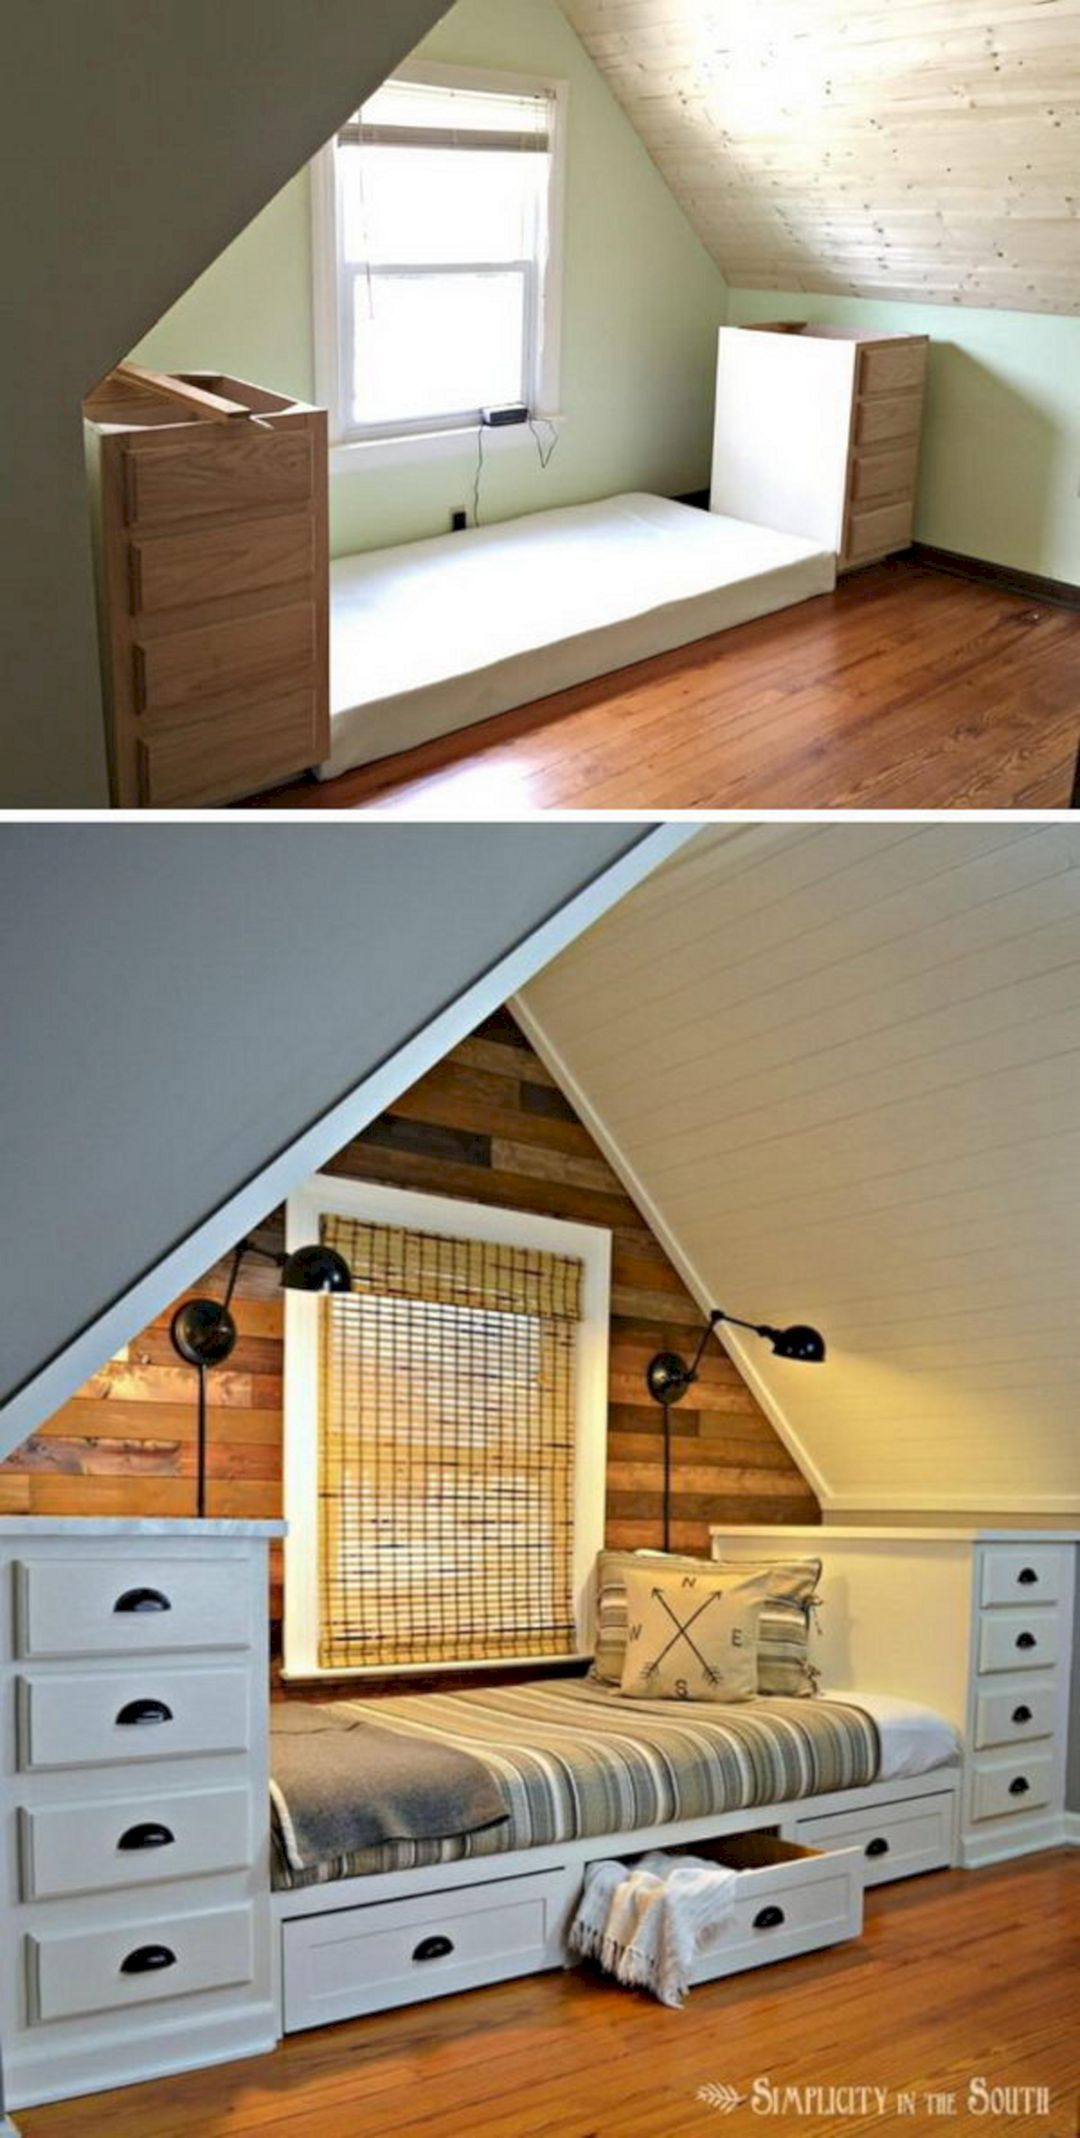 Loft bedroom storage ideas   Stunning Cozy Bedroom Storage Ideas For Small Space  Bedroom